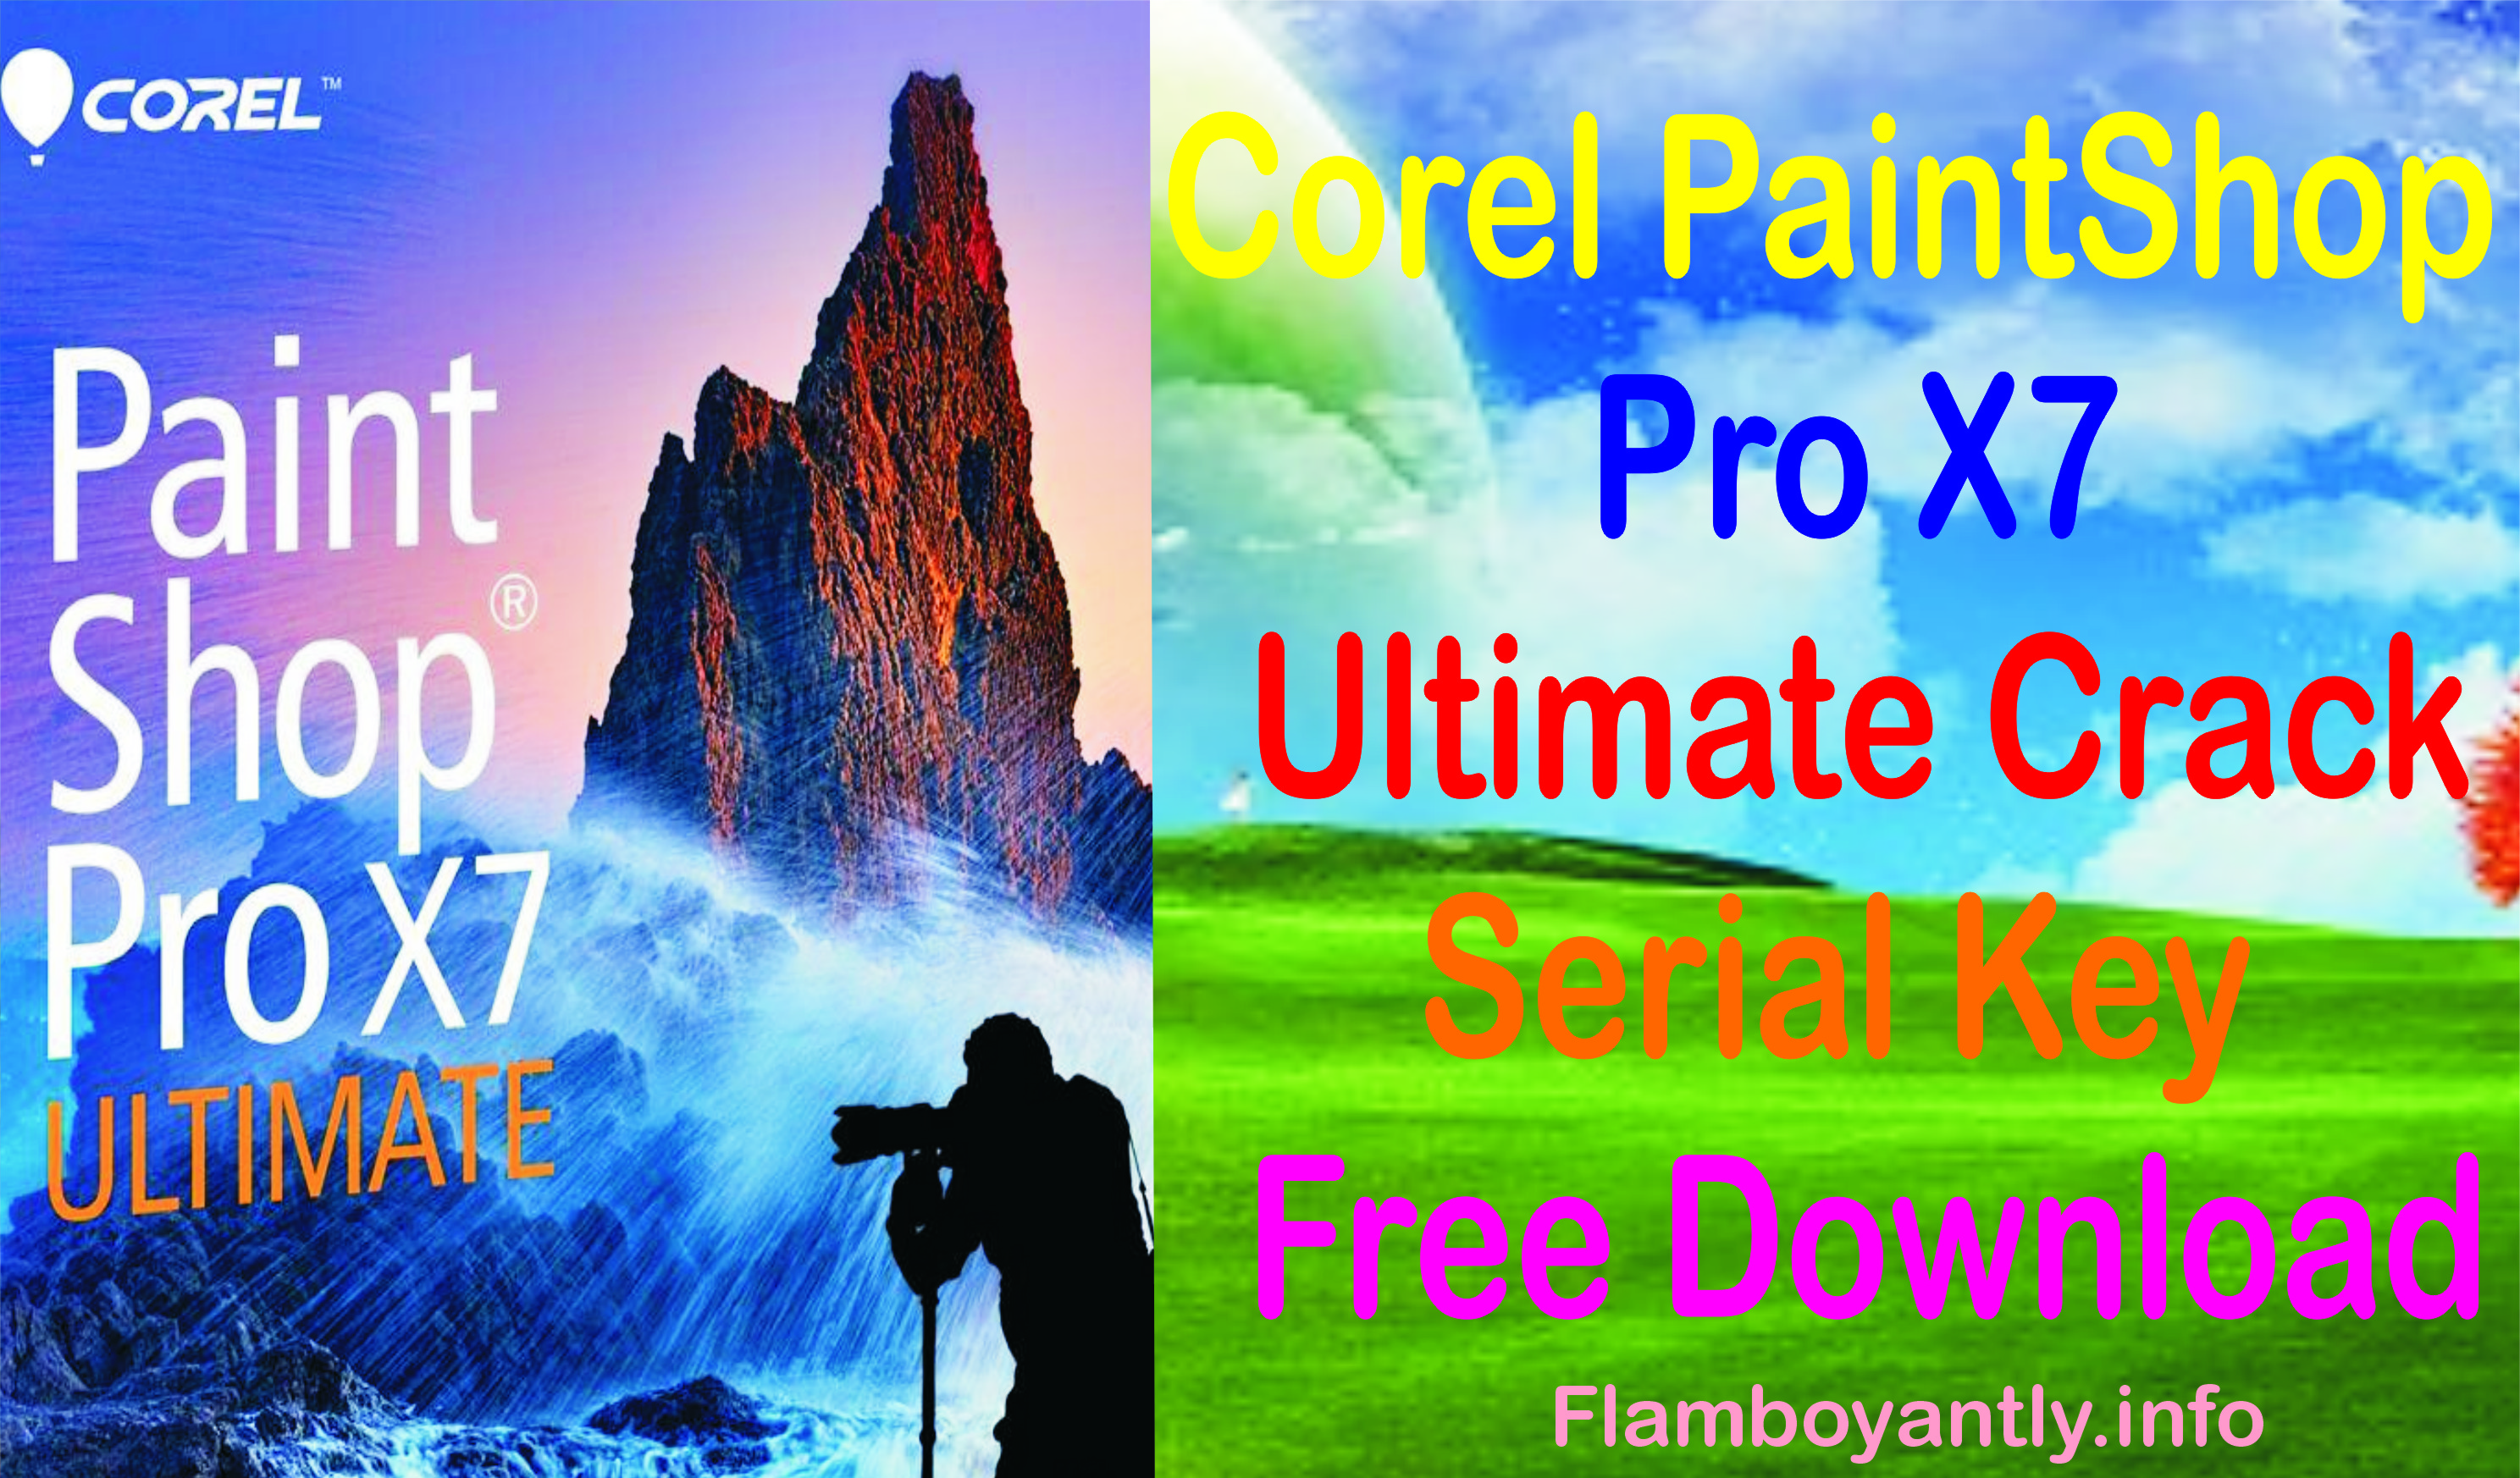 Corel PaintShop Pro X7 Ultimate Crack Serial Key Free Download